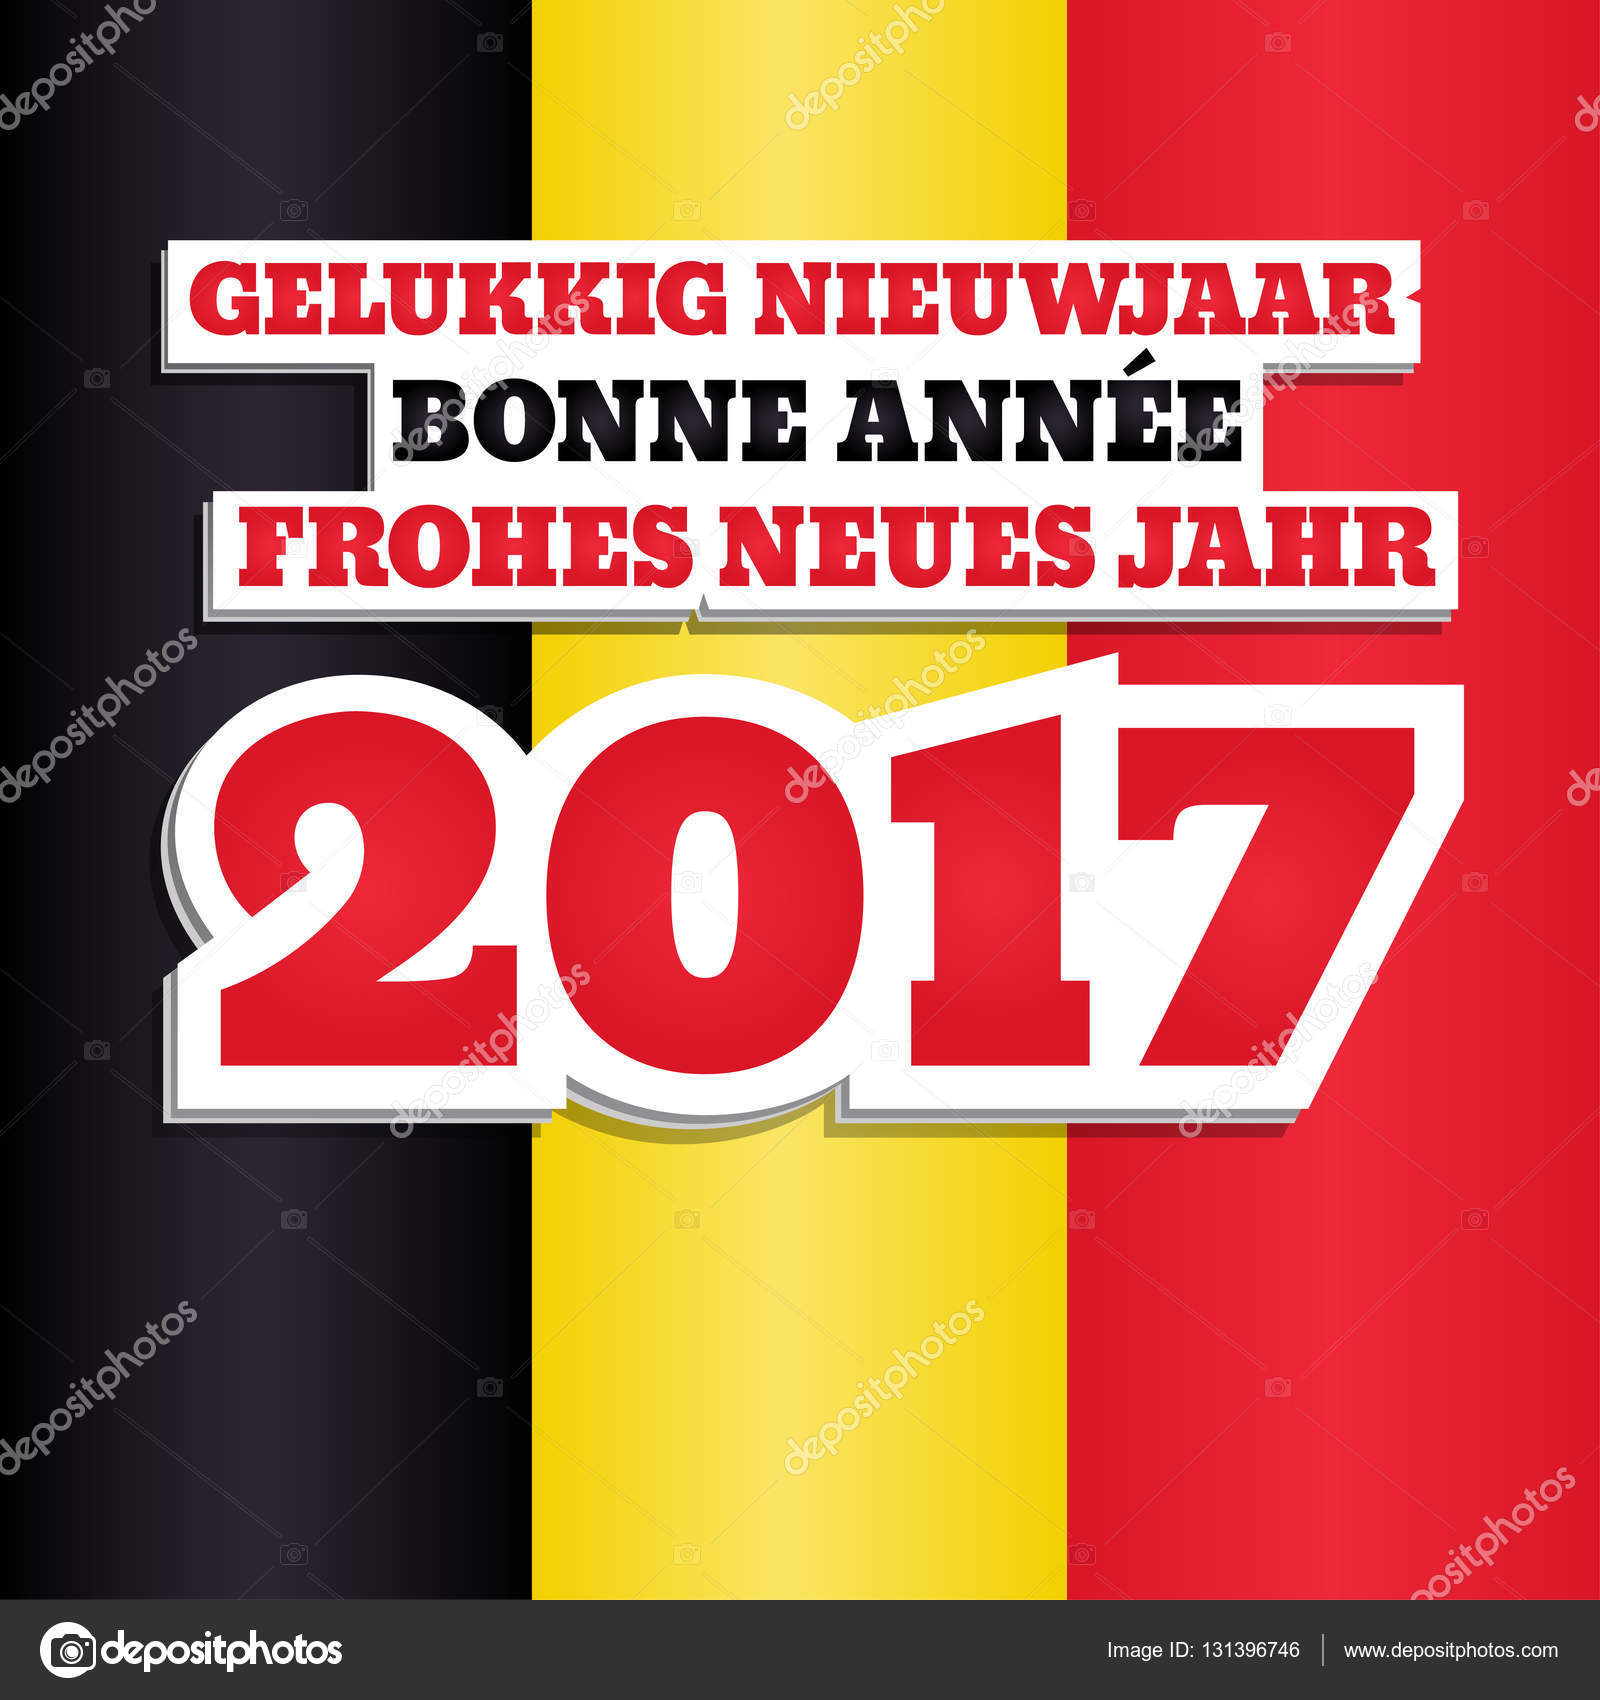 New year 2017 belgium stock vector spoorloos 131396746 vector greeting card with text happy new year 2017 in dutch french and german abstract background with colors of national flag of belgium kristyandbryce Gallery